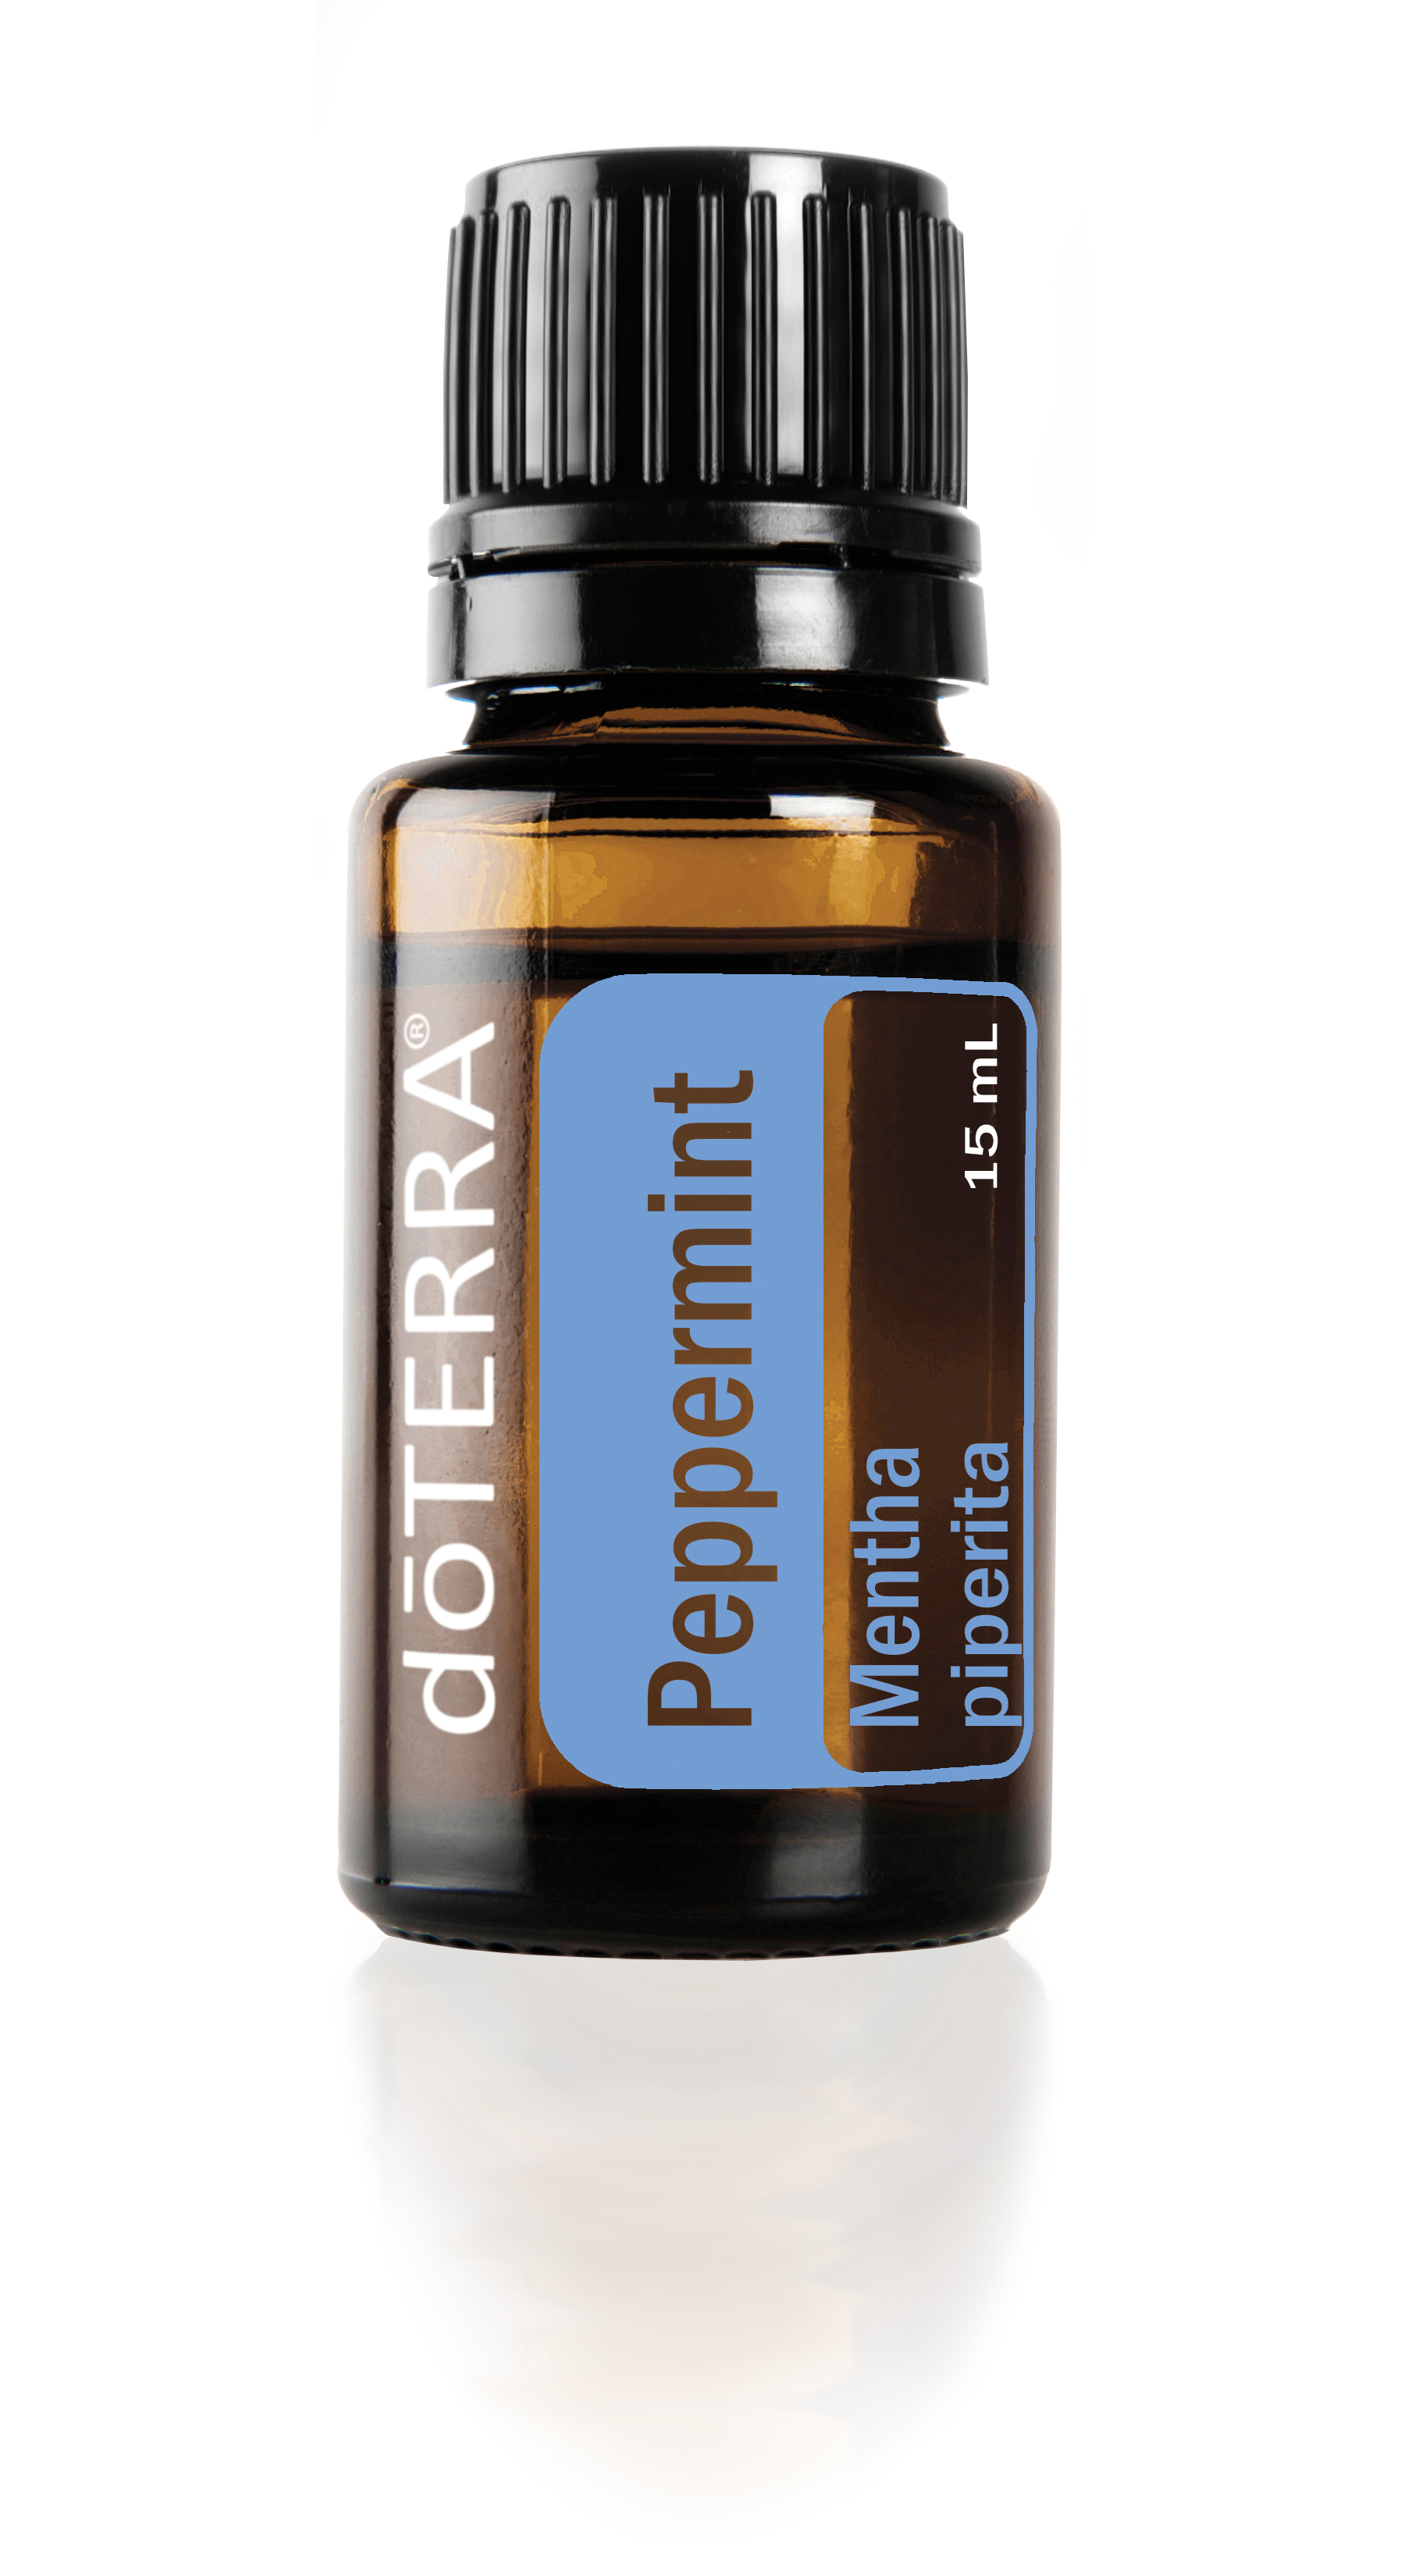 Peppermint - Soothes upset stomachProvides an energy boostFreshens breath